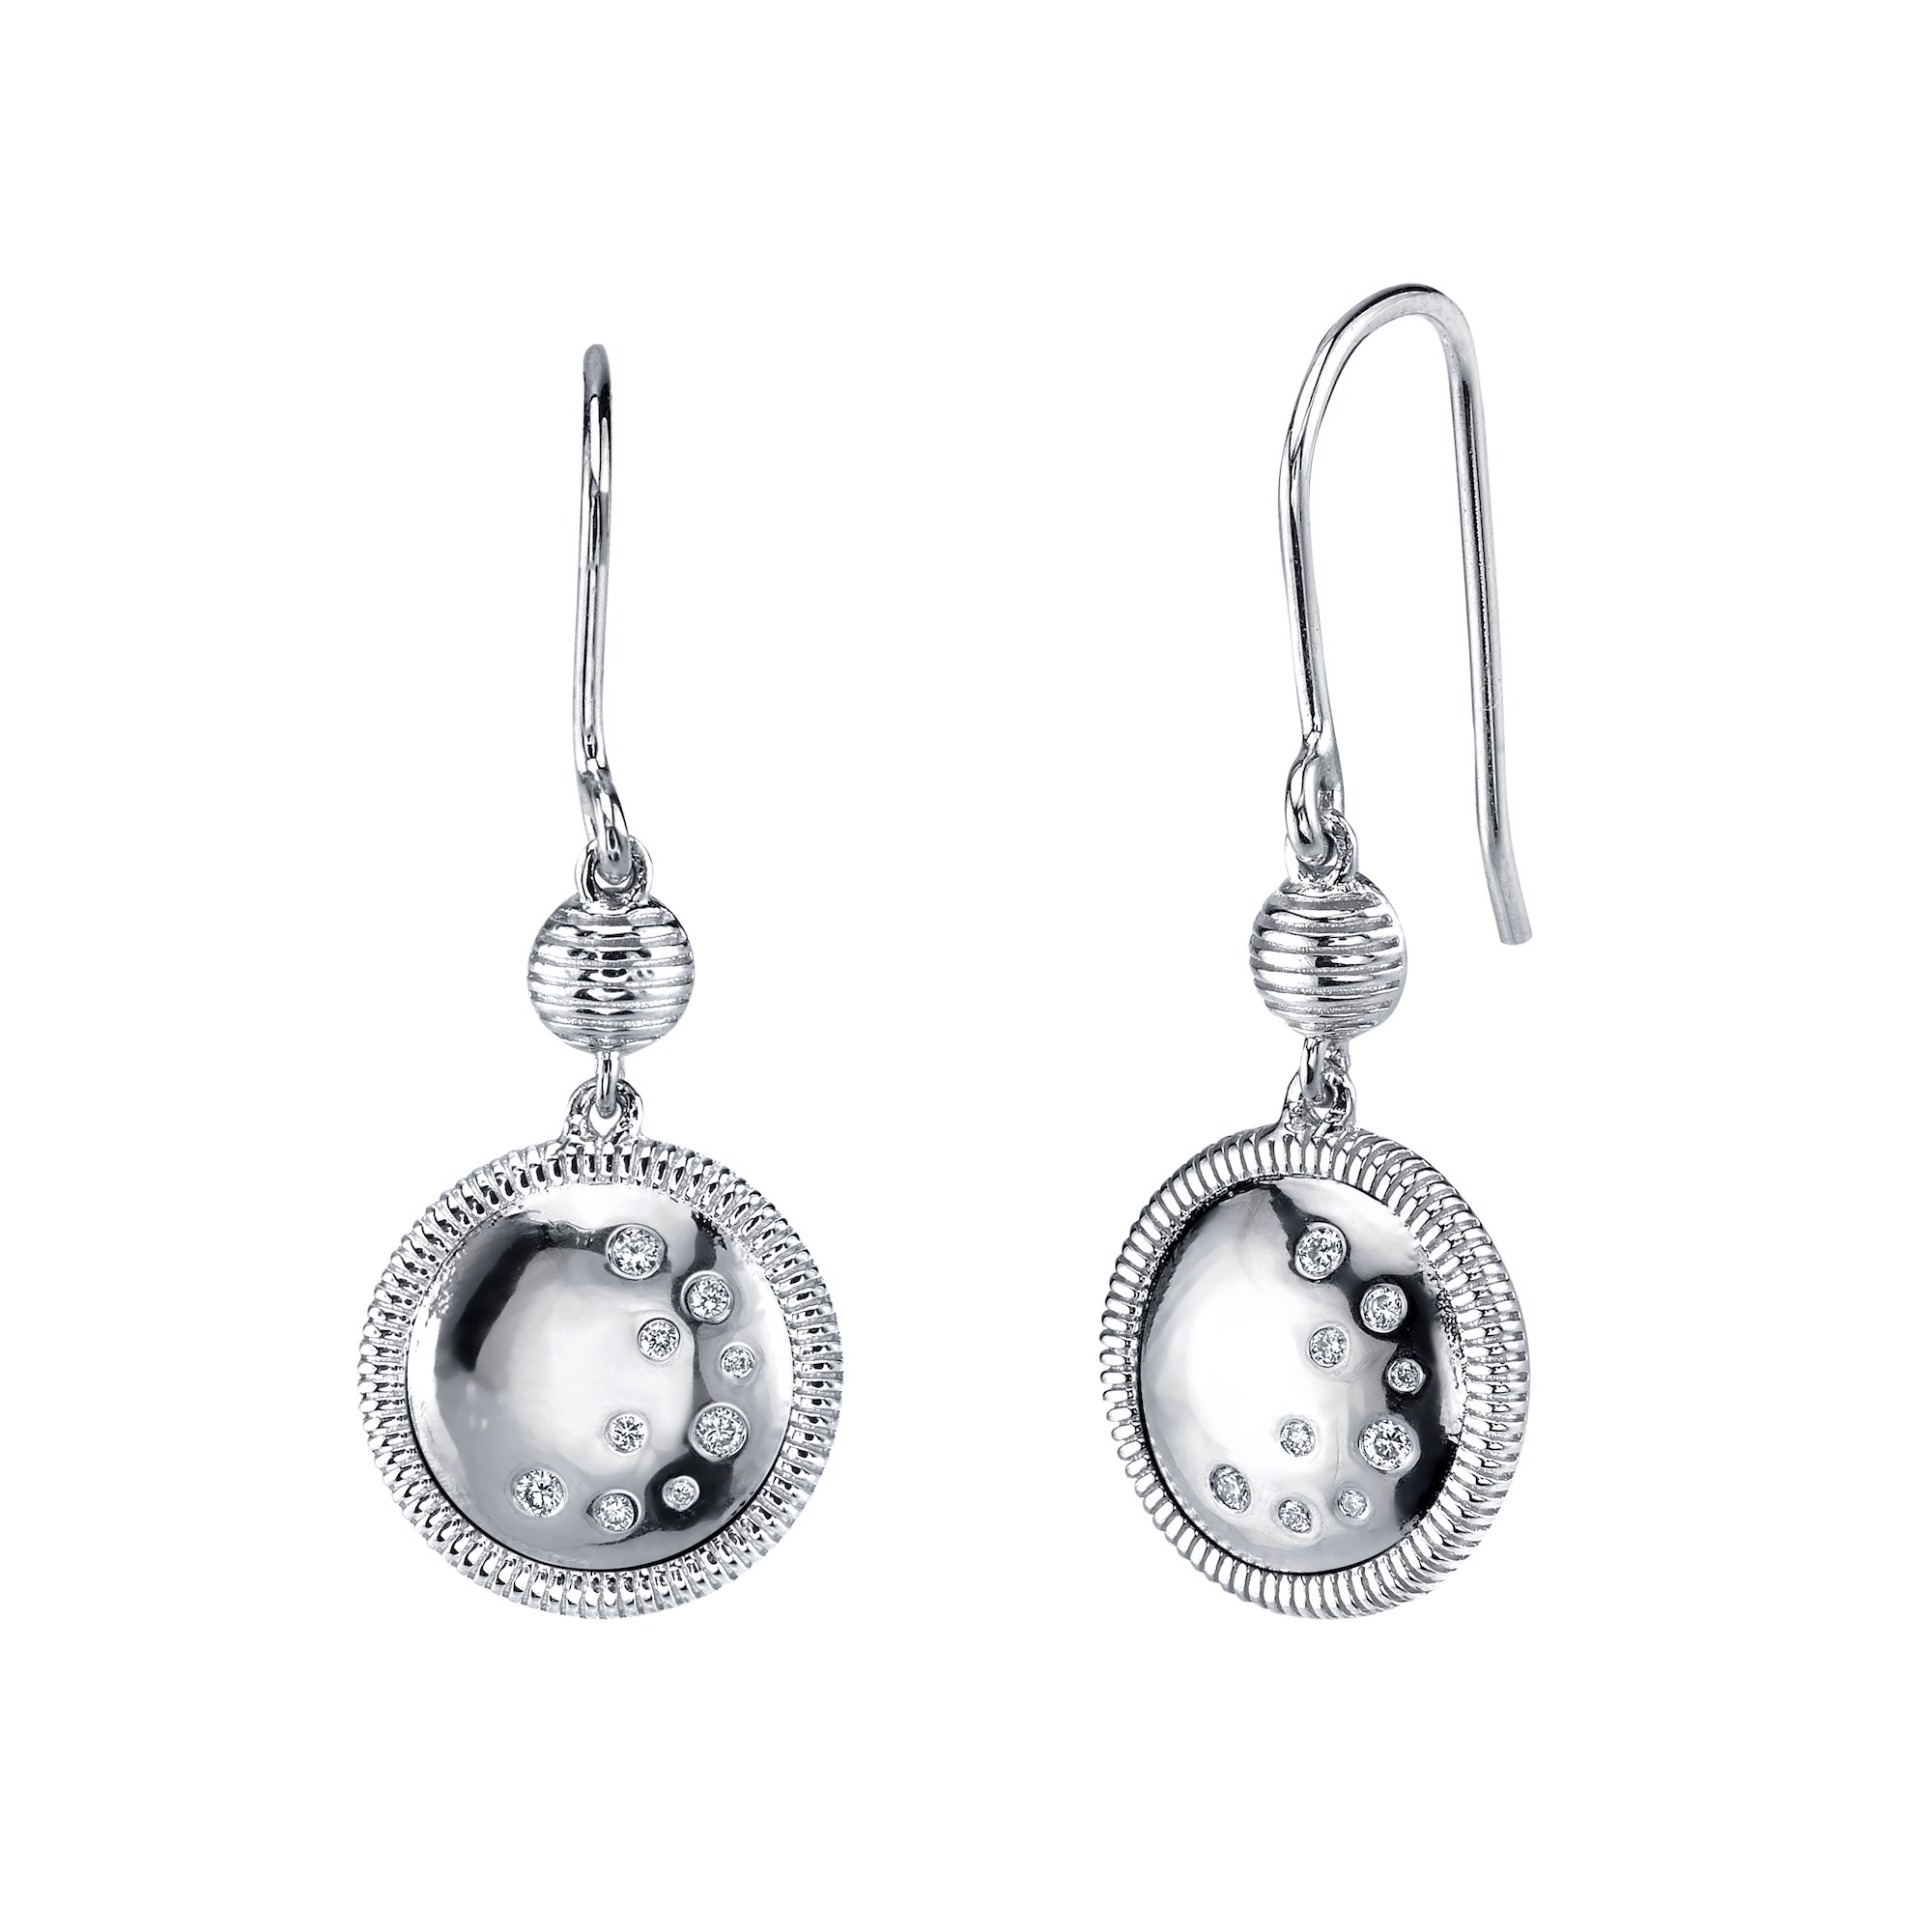 CHARLIZE GADBOIS Sterling Silver Diamond Drop Earrings, White Rhodium (0.11 cttw, I1-I2 Clarity)